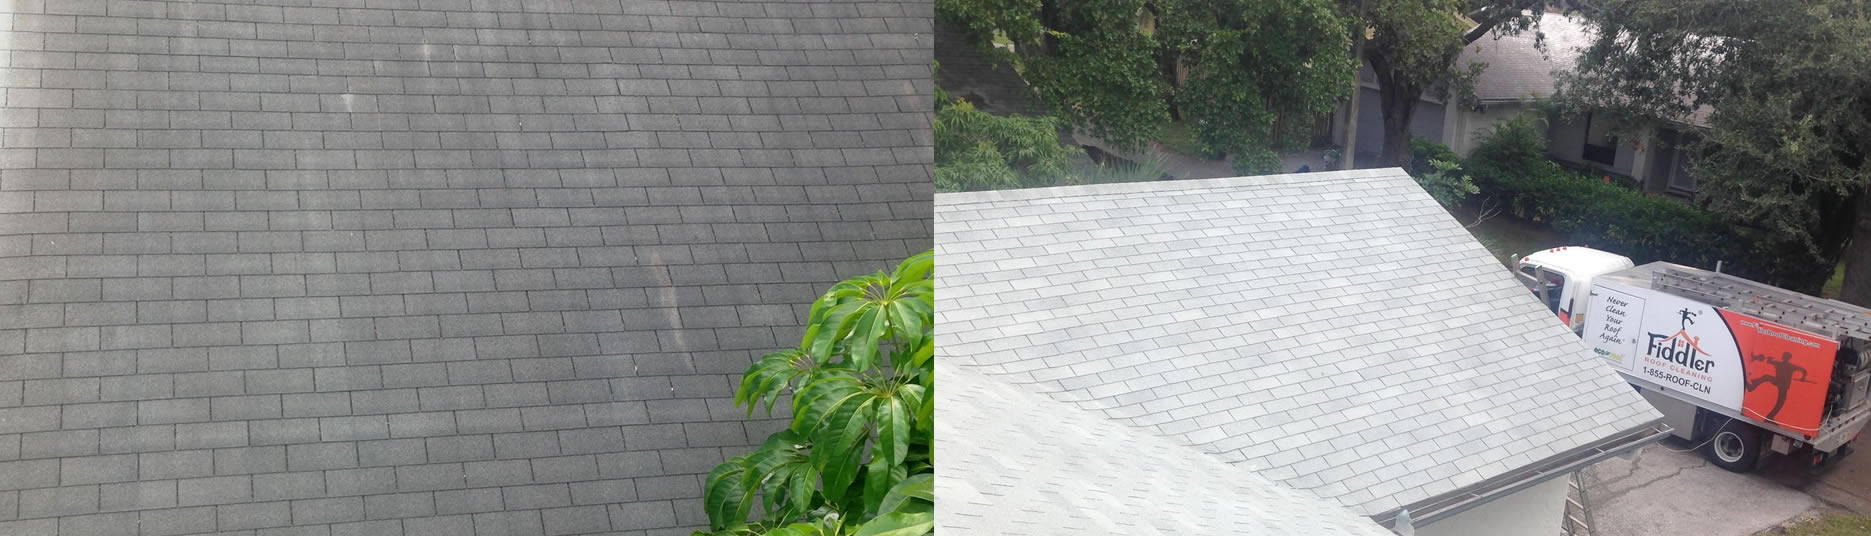 Fiddler Roof Cleaning is the roof cleaning Coconut Creek company with the skill set needed to rejuvenate your home today! Call us now!